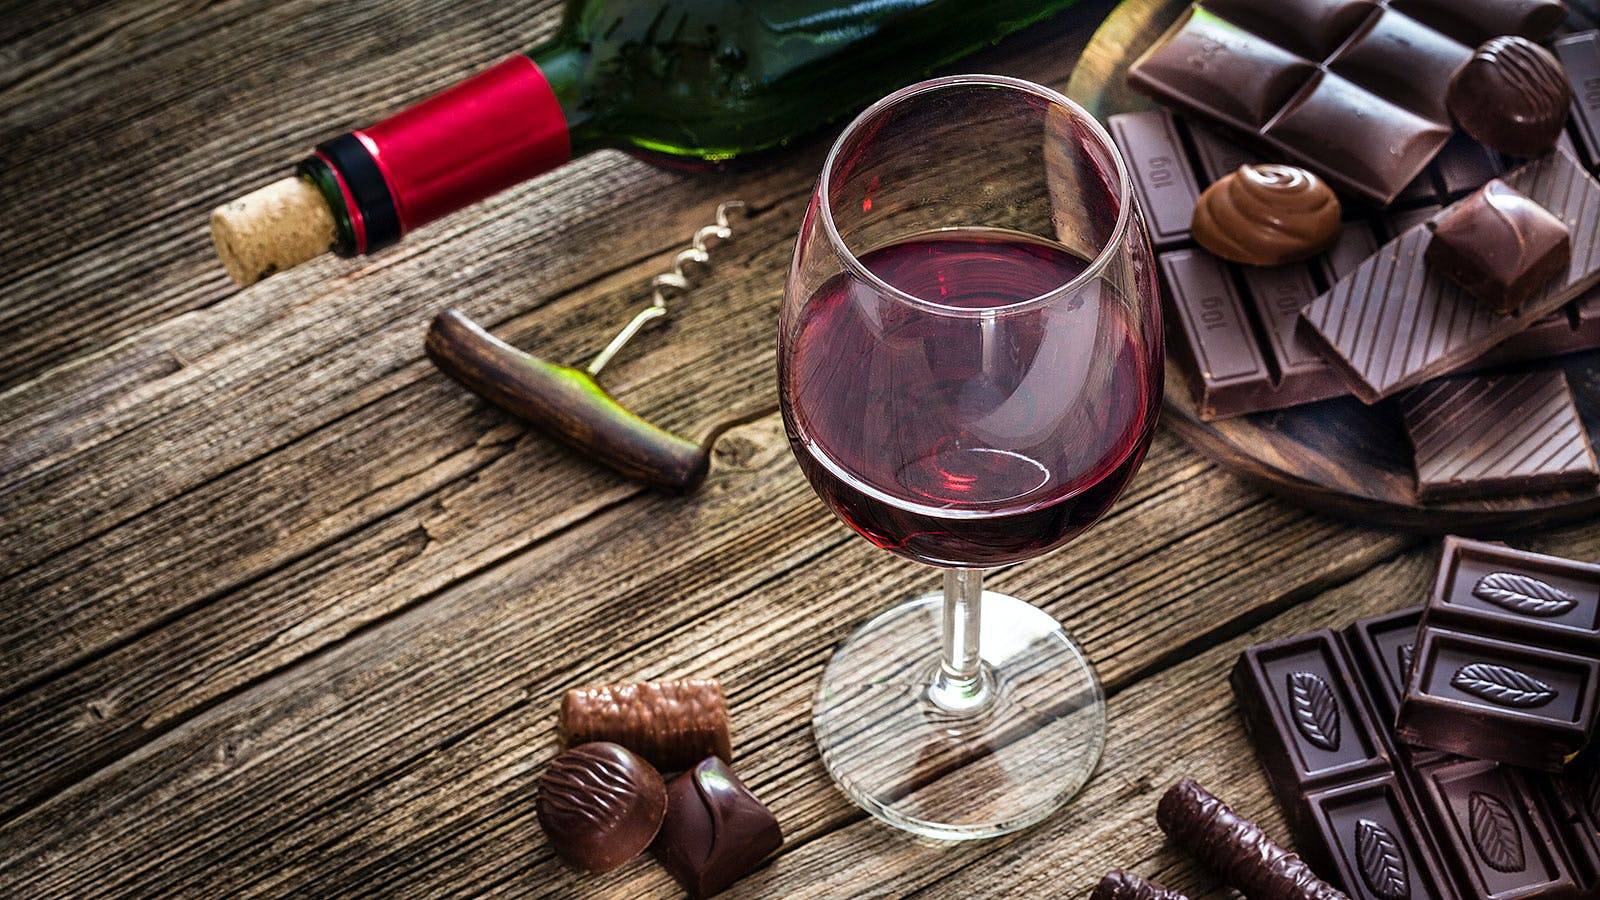 ABCs of Pairing Wine and Chocolate